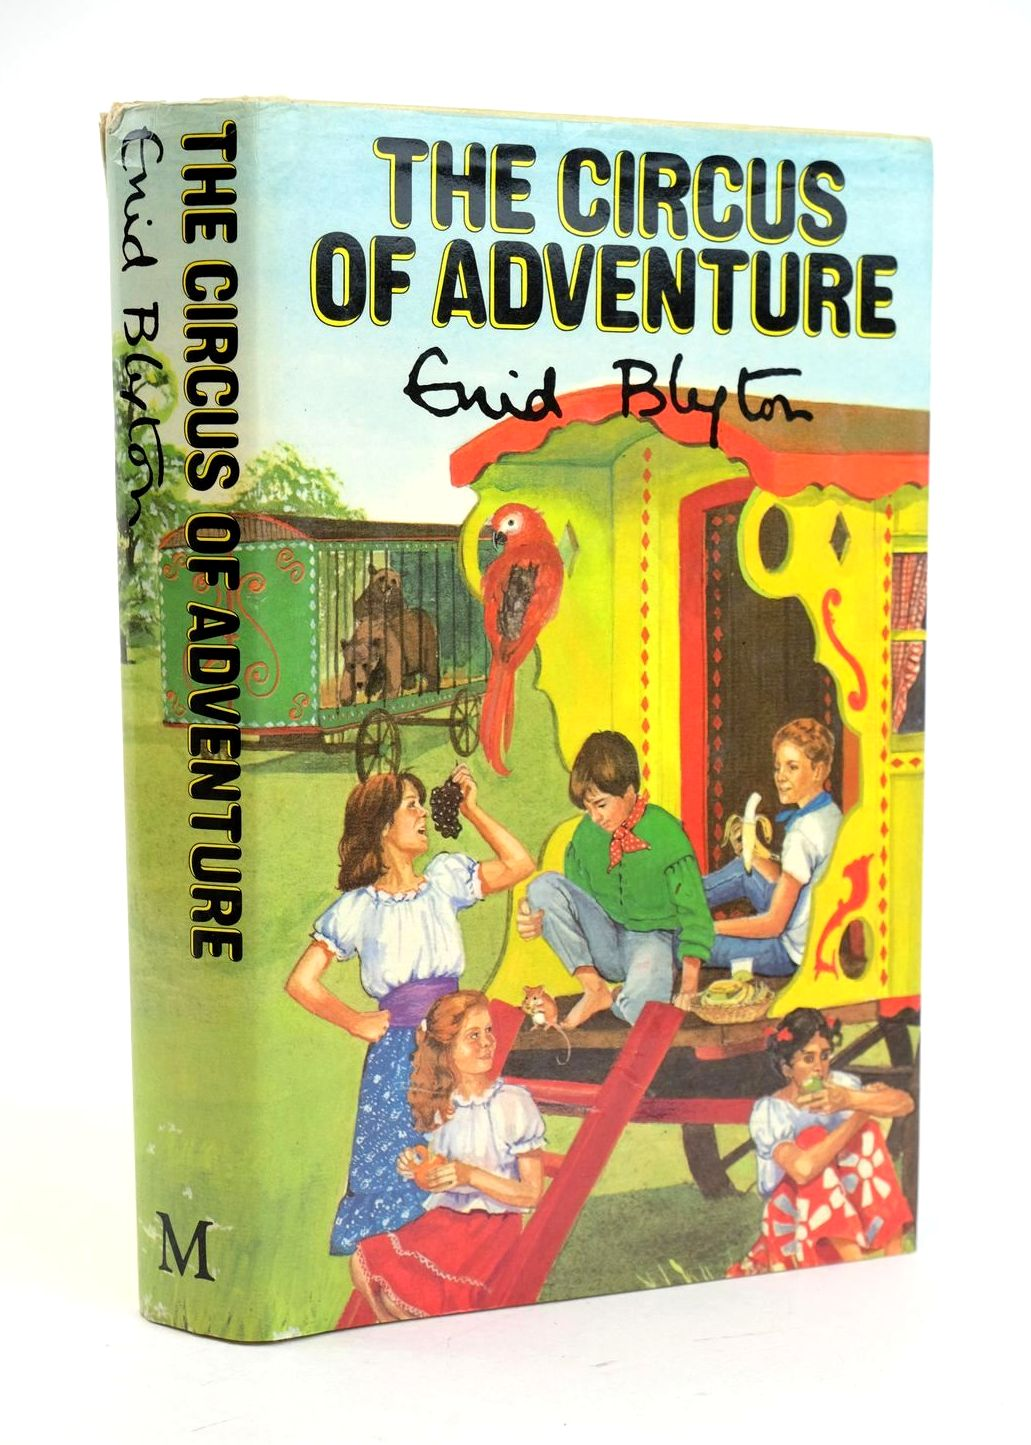 Photo of THE CIRCUS OF ADVENTURE written by Blyton, Enid illustrated by Tresilian, Stuart published by Macmillan & Co. Ltd. (STOCK CODE: 1319112)  for sale by Stella & Rose's Books